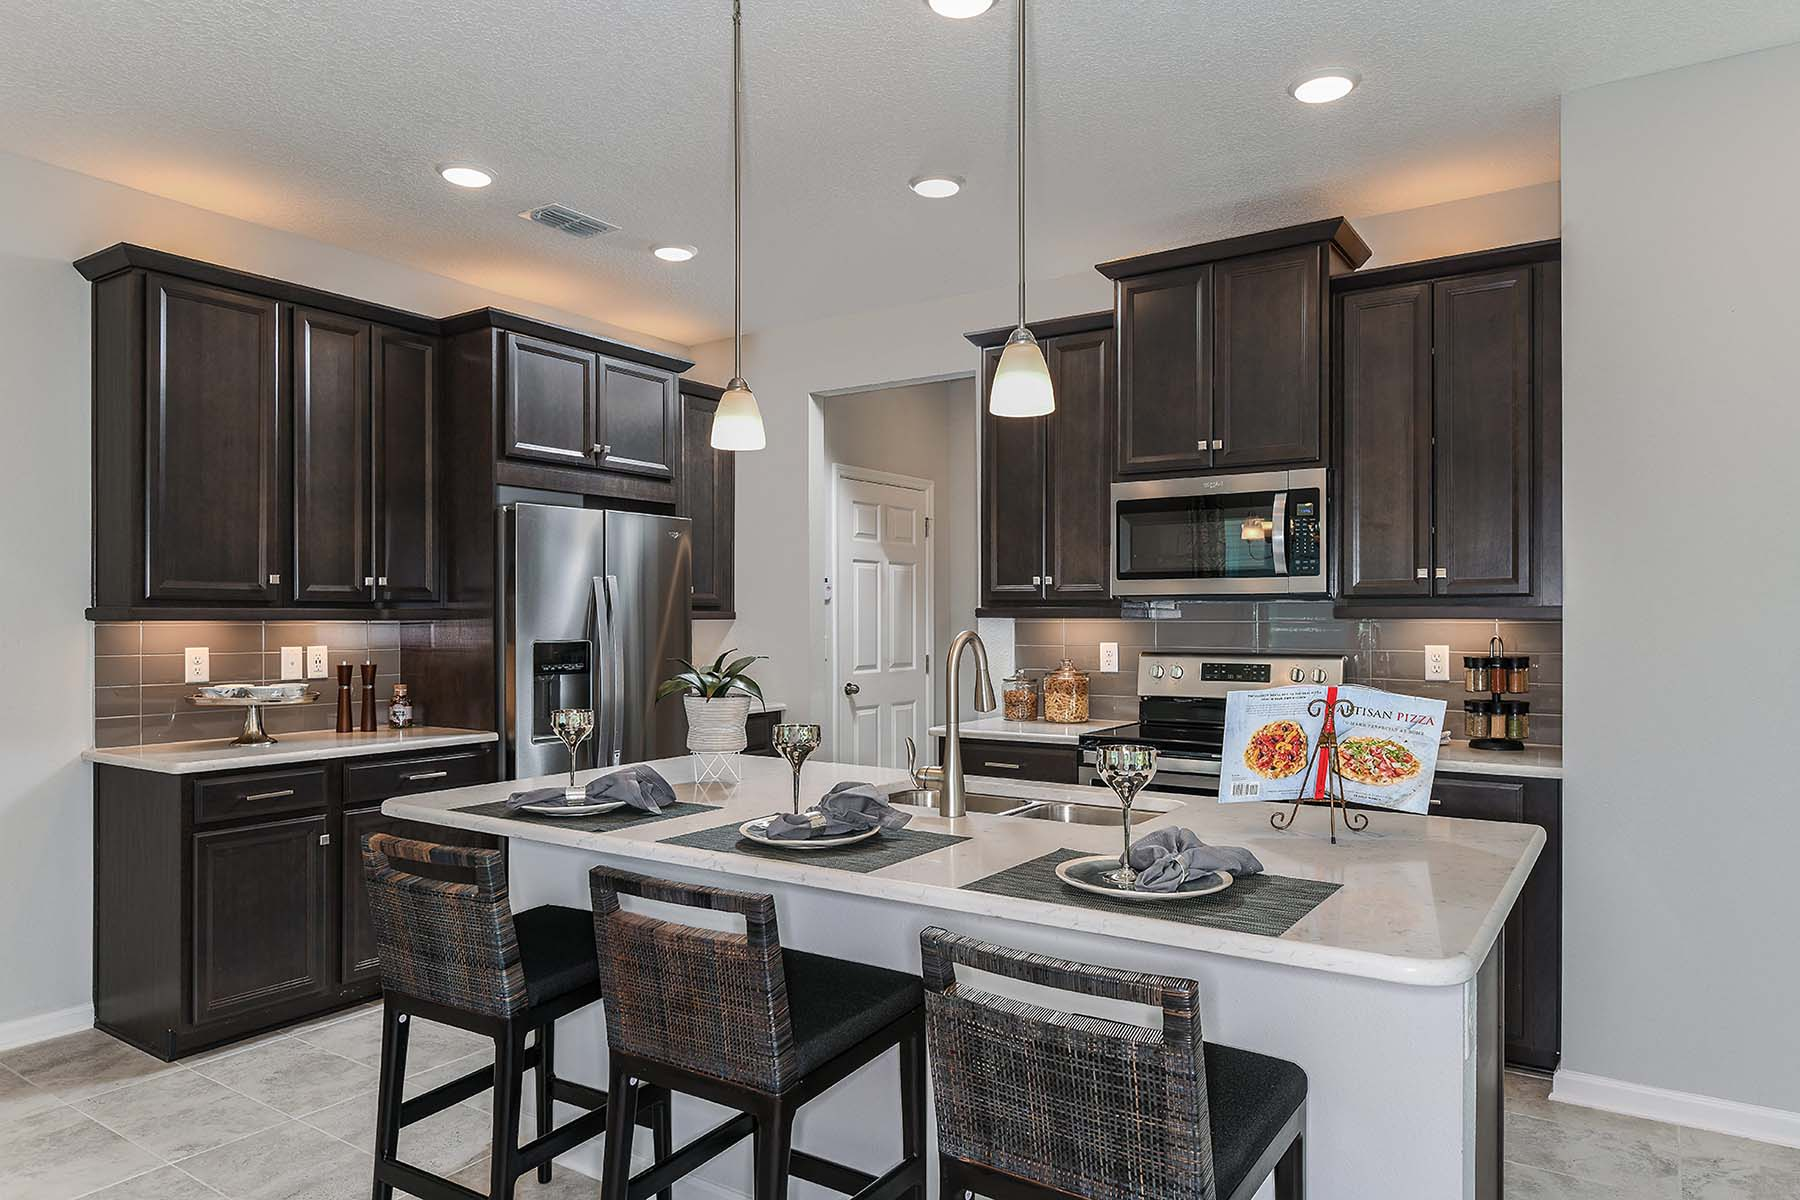 Whitney Plan Kitchen at RiverTown - Haven in St. Johns Florida by Mattamy Homes